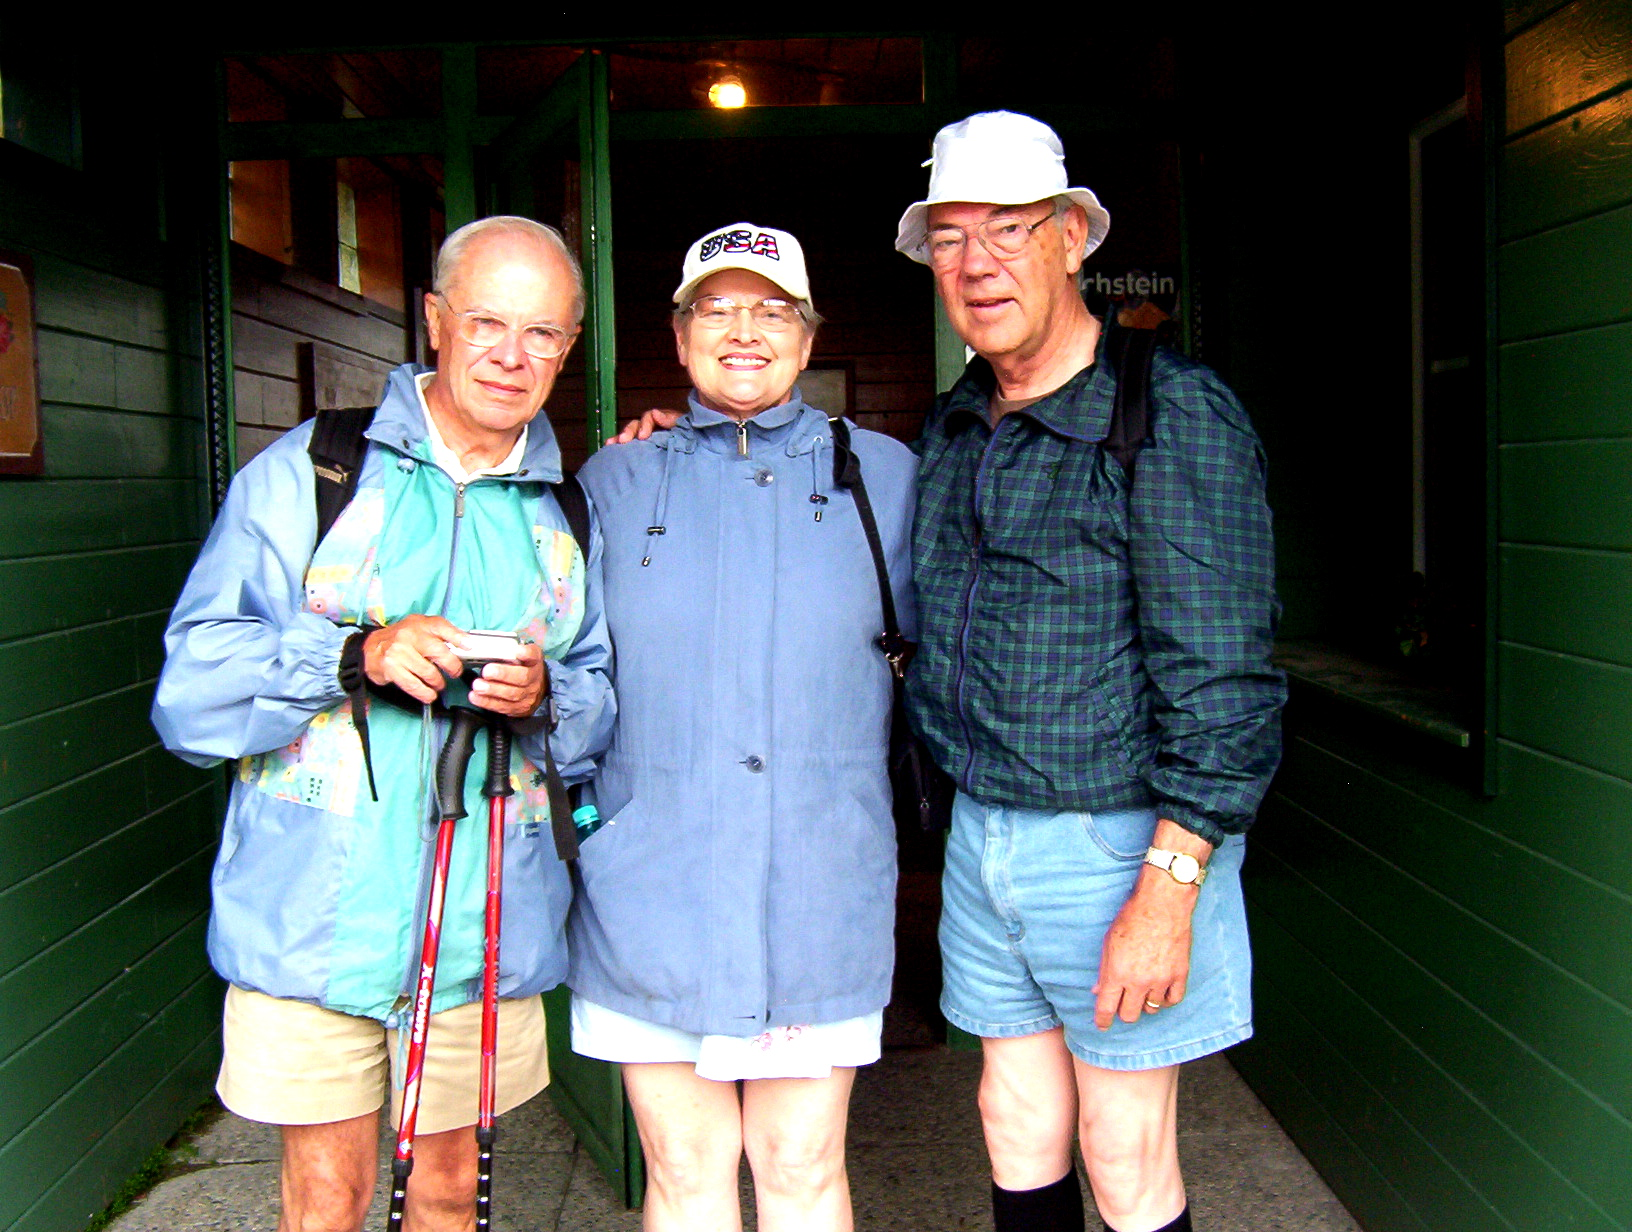 Dick & Dan talked while hiking in the Austrian Alps